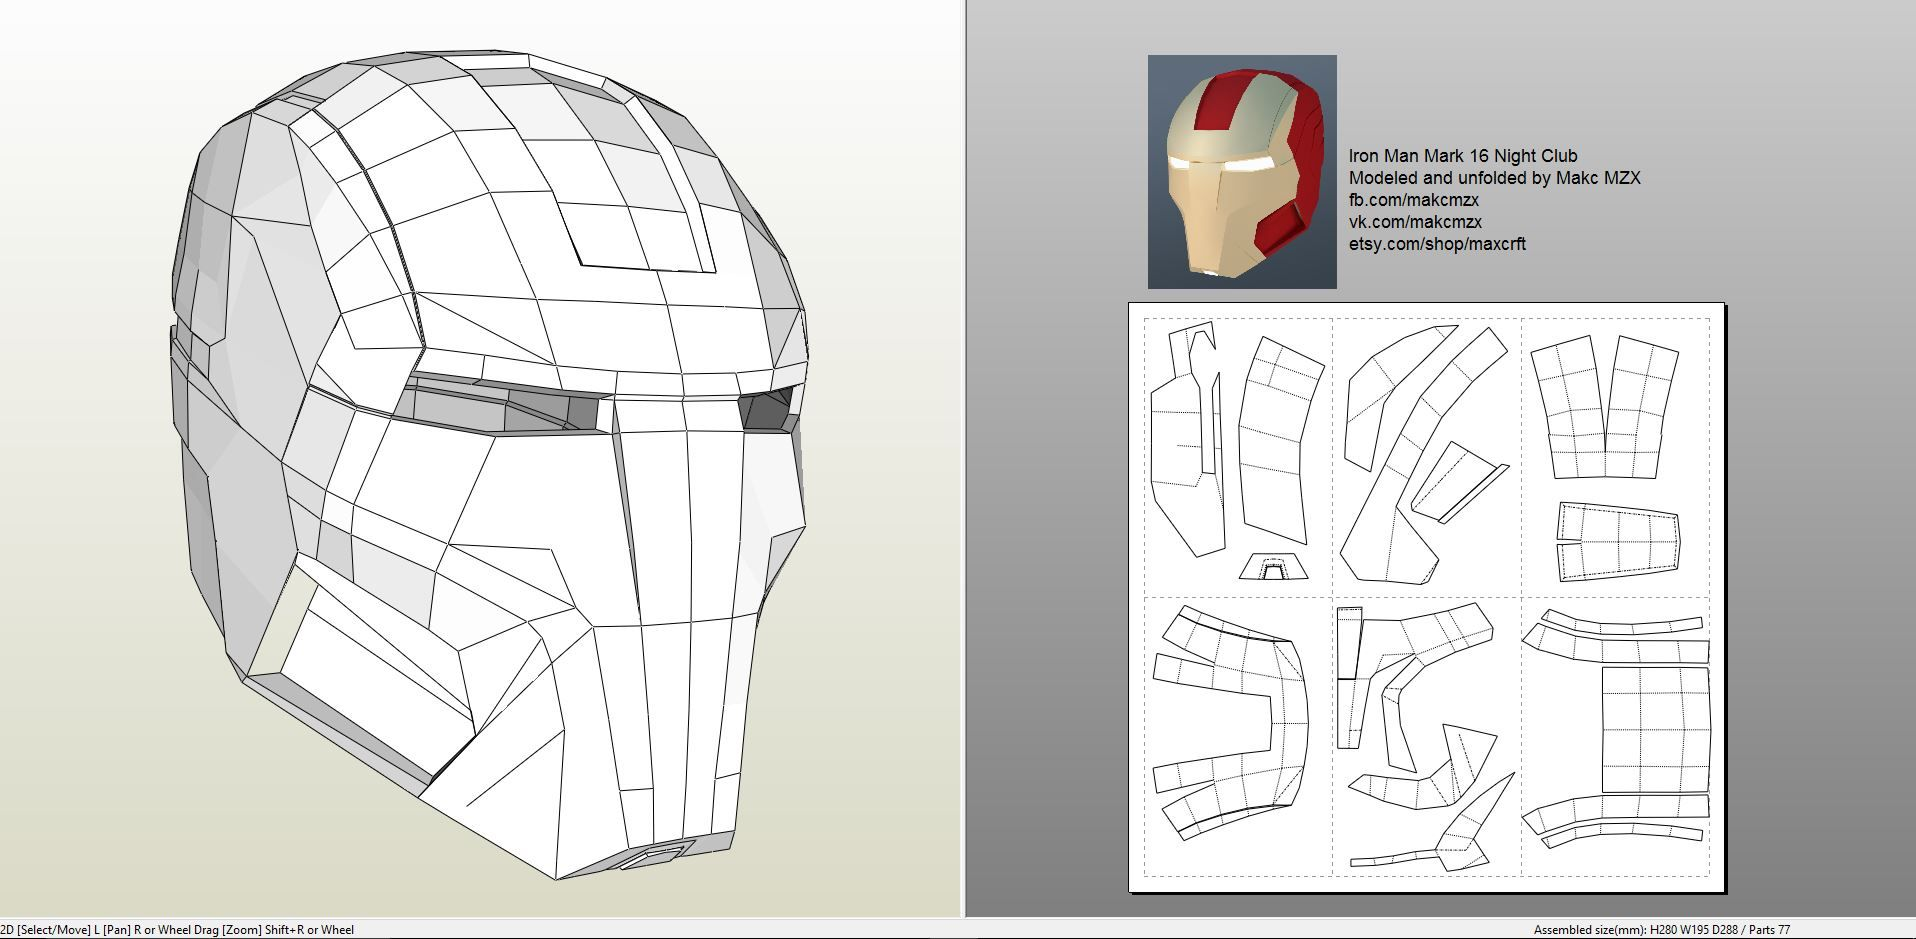 Papercraft Pdo File Template For Iron Man Mark 16 Helmet Foam Iron Man Helmet Iron Man Mask Iron Man